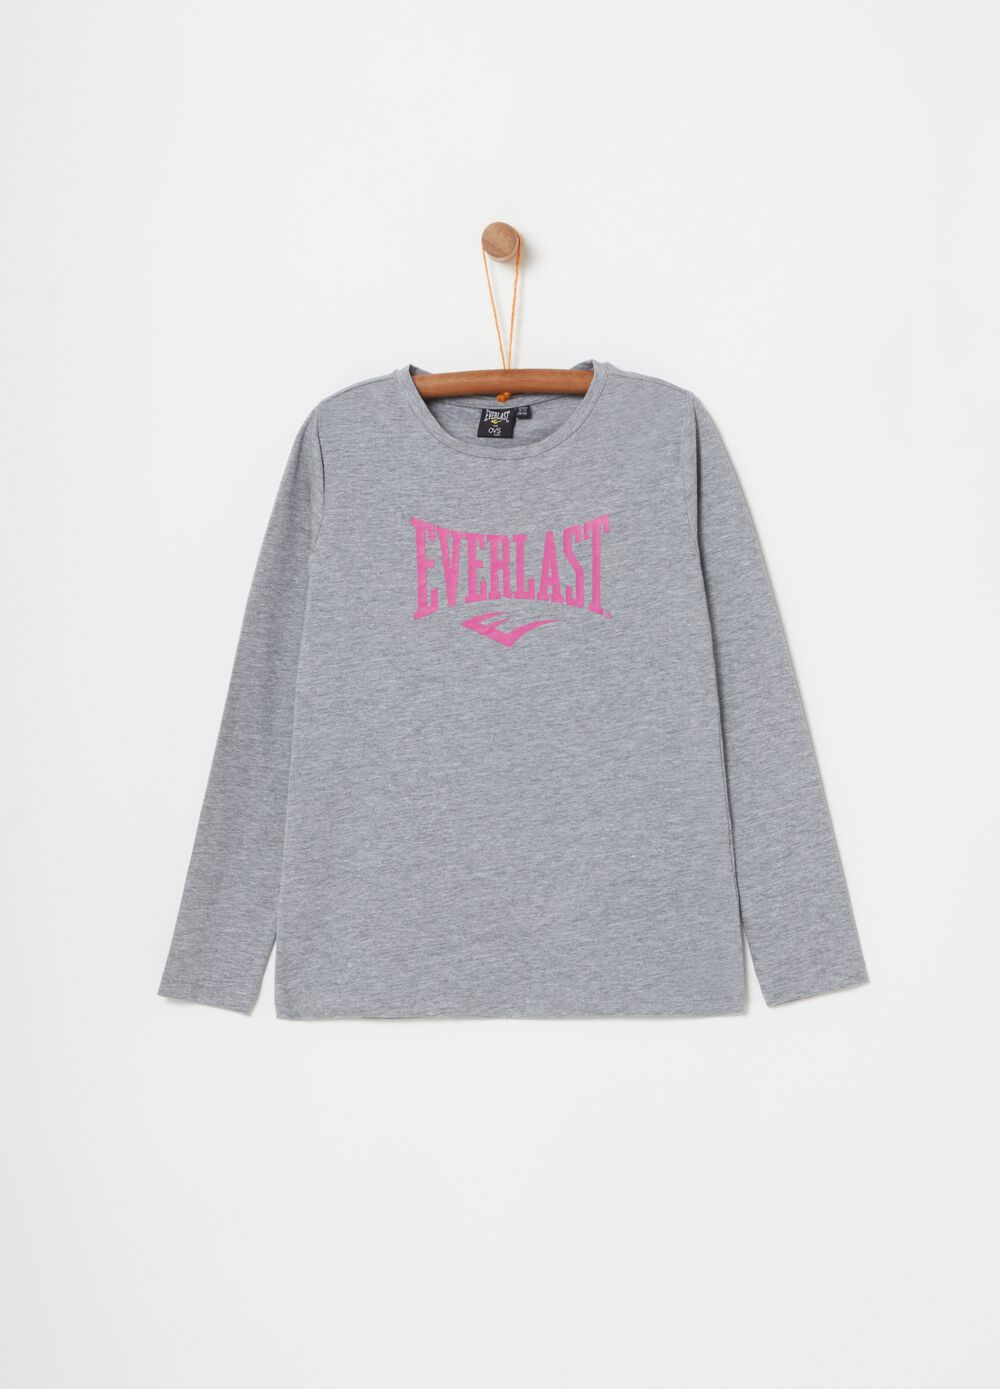 Stretch cotton T-shirt with Everlast print